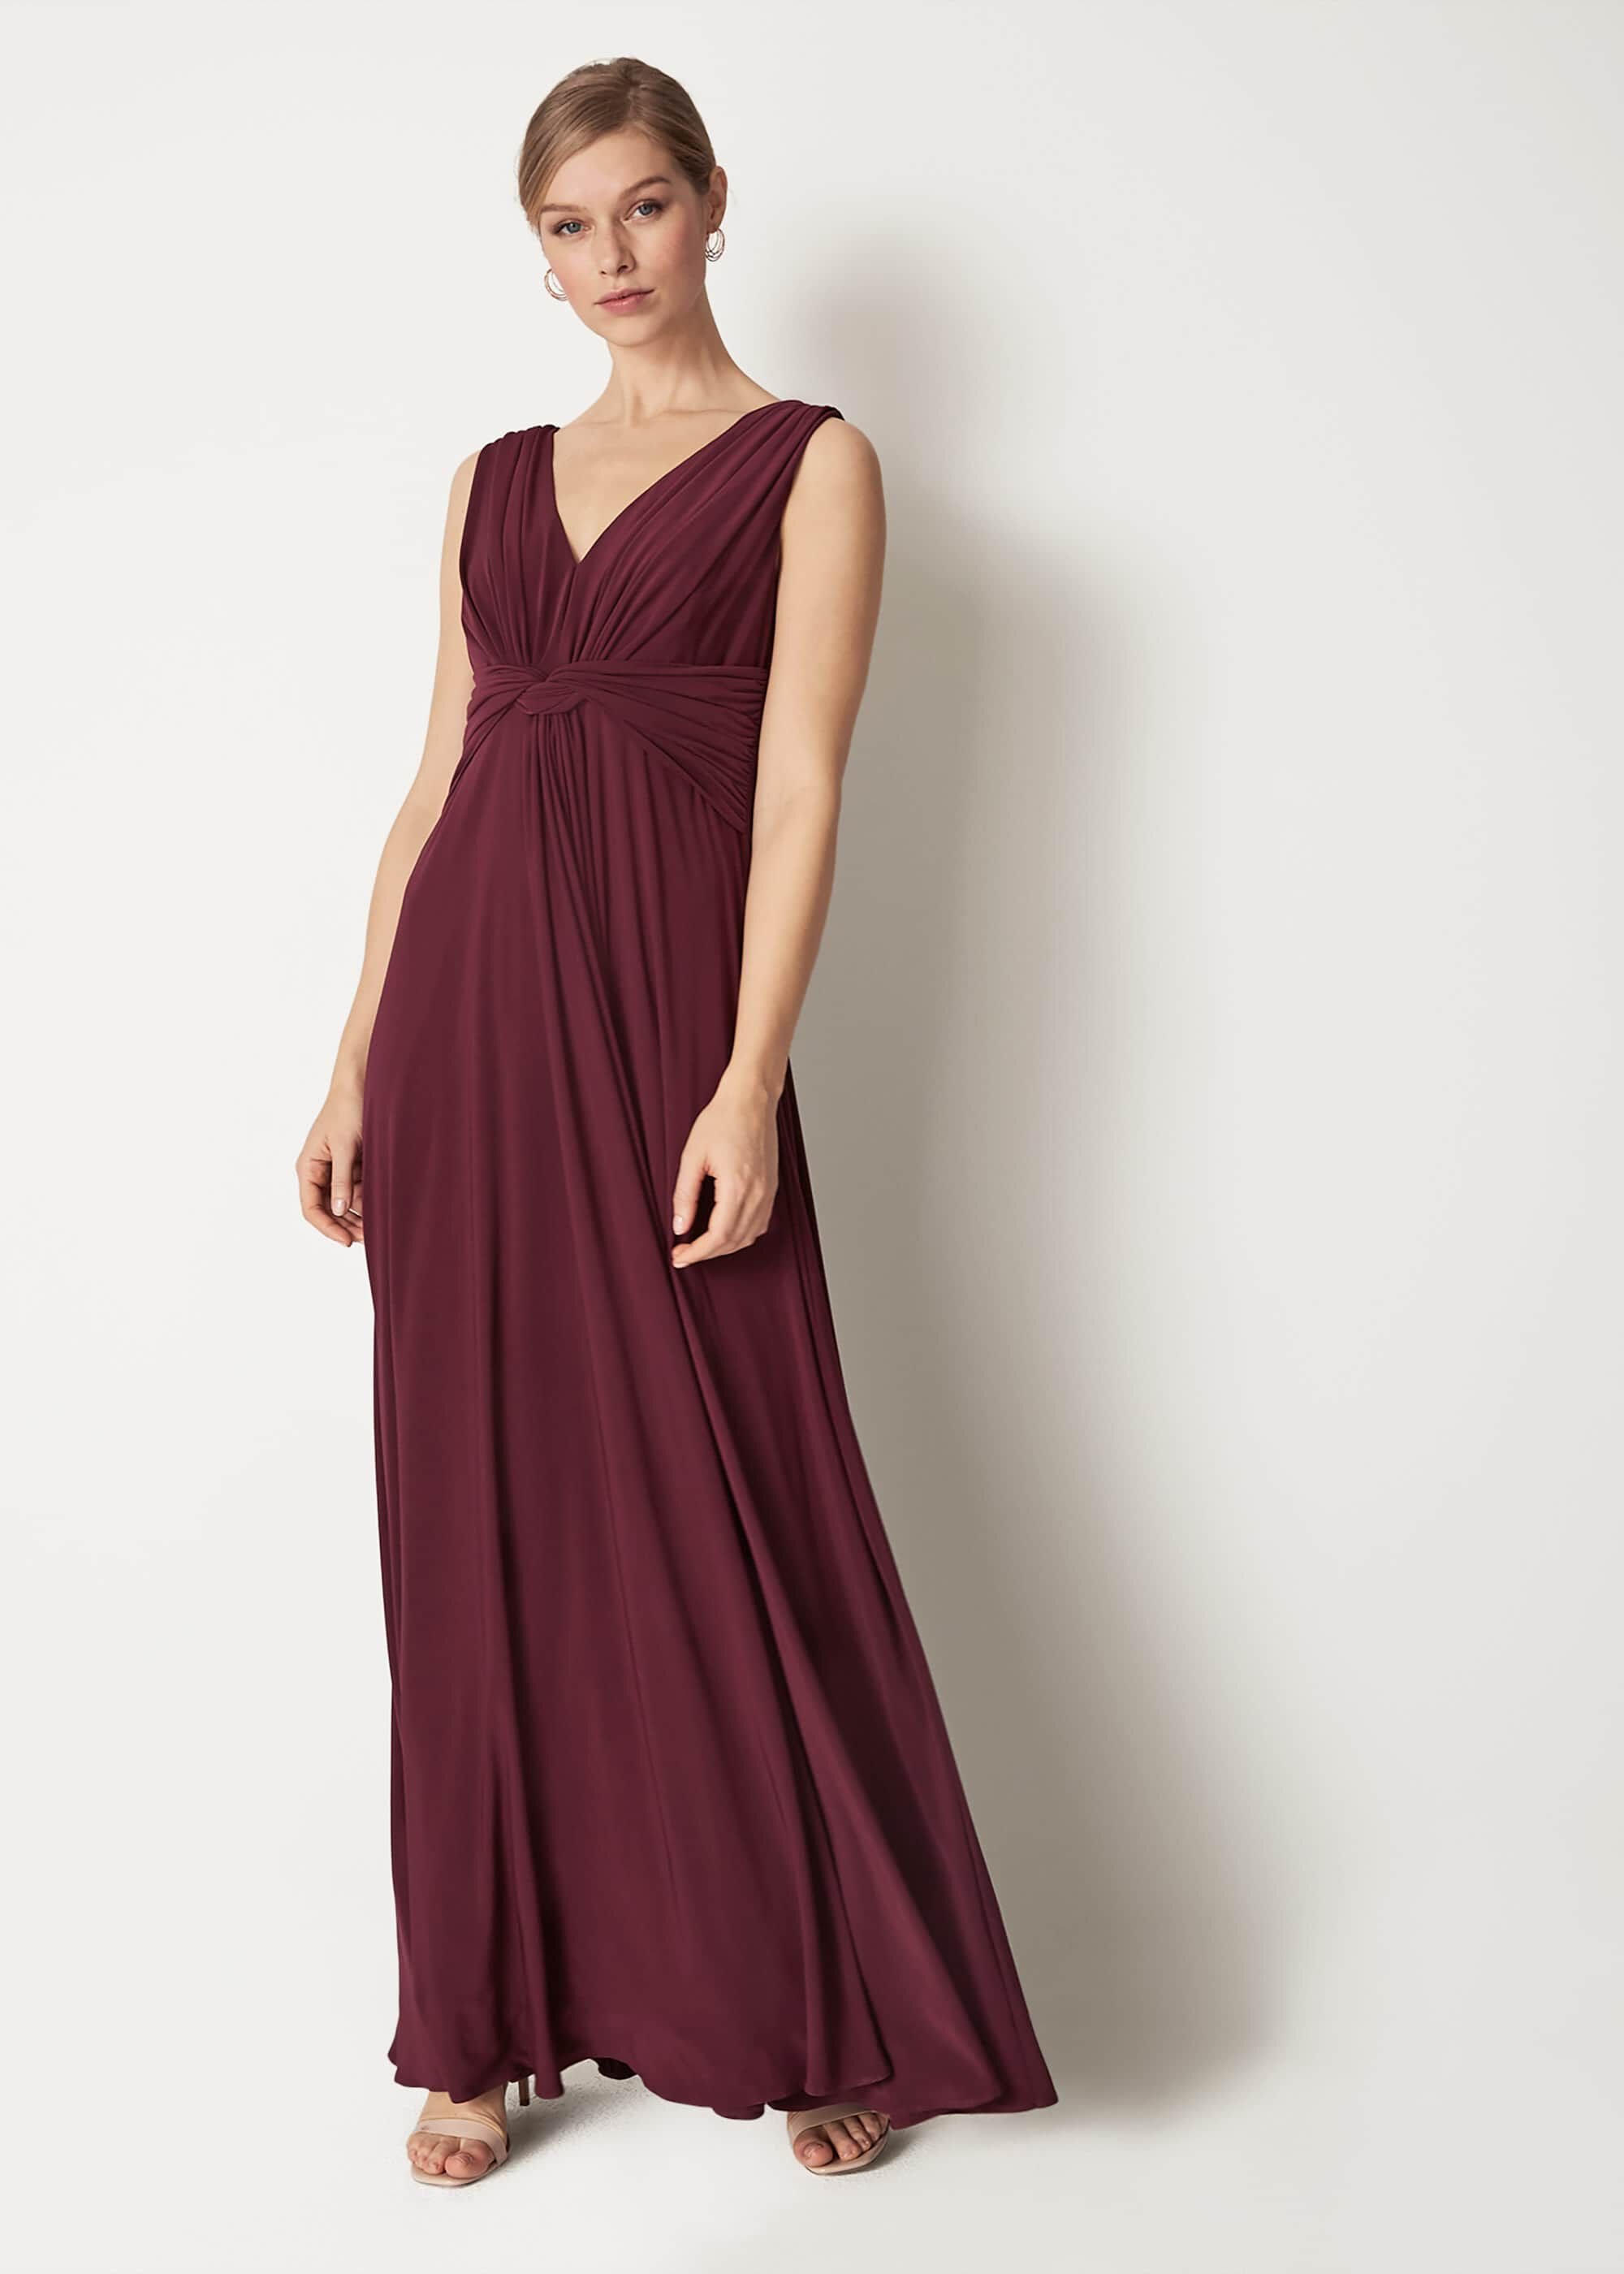 Phase Eight Arabella Maxi Dress, Red, Maxi